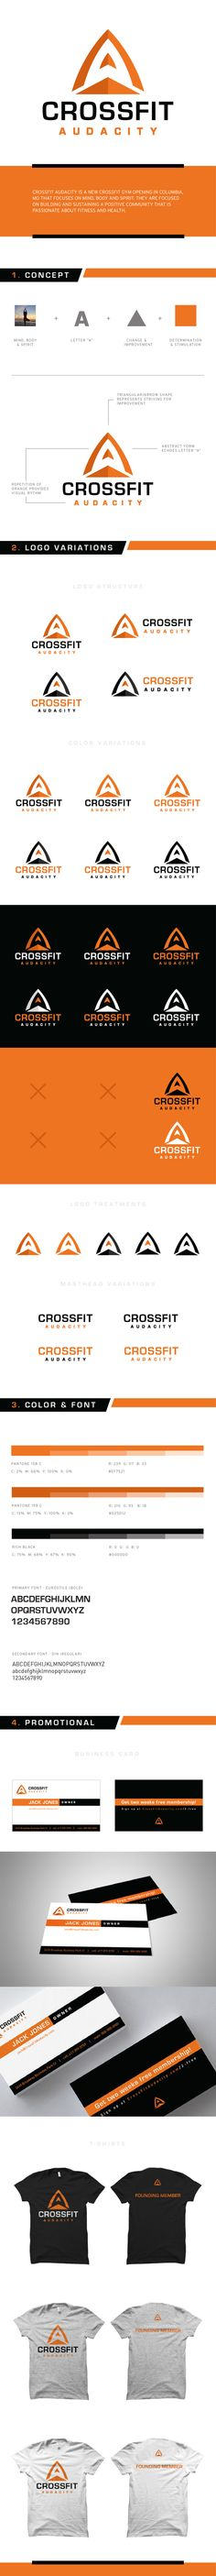 CrossFit Audacity by William Frazier, via Behance